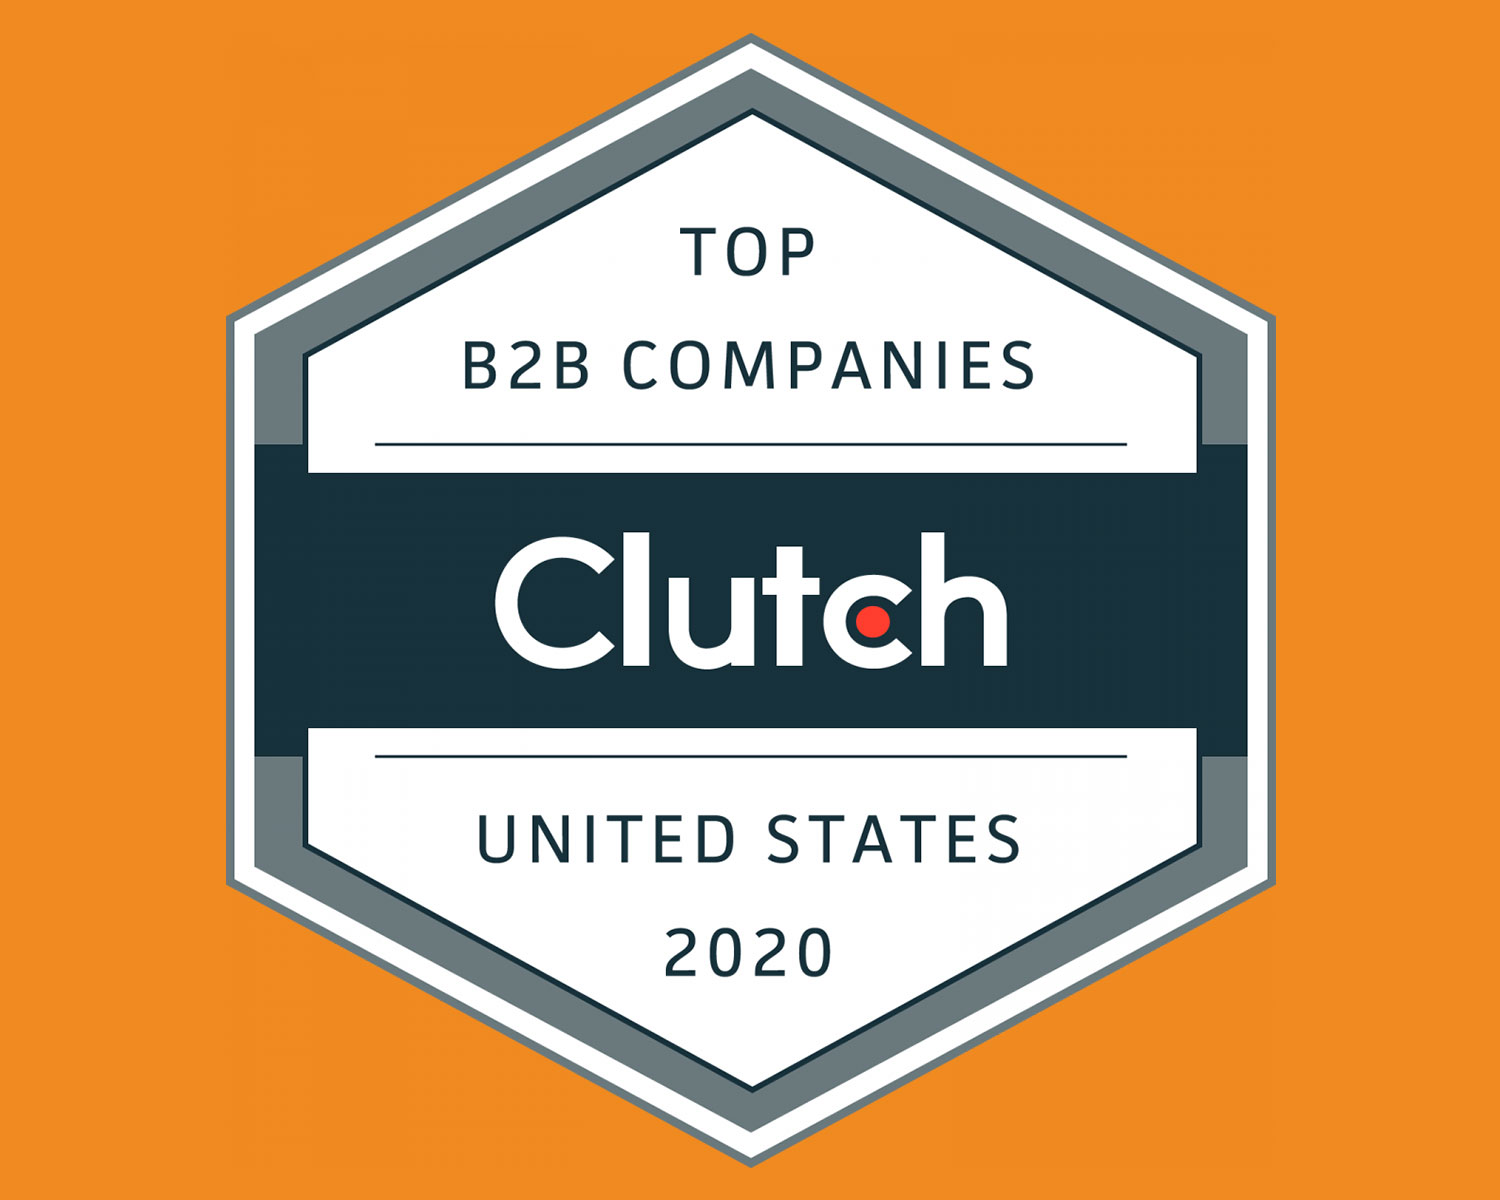 GKV named one of the top B2B firms by Clutch - GKV